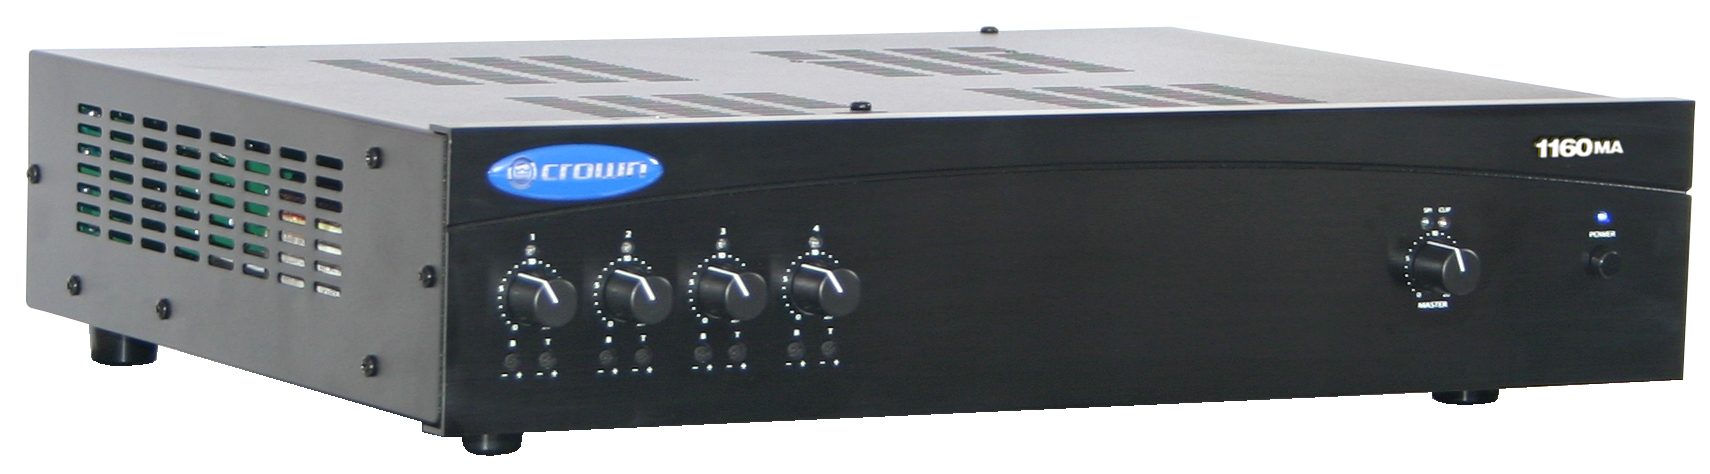 1160ma crown audio professional power amplifiers rh crownaudio com Crown Amplifiers crown 160ma manual